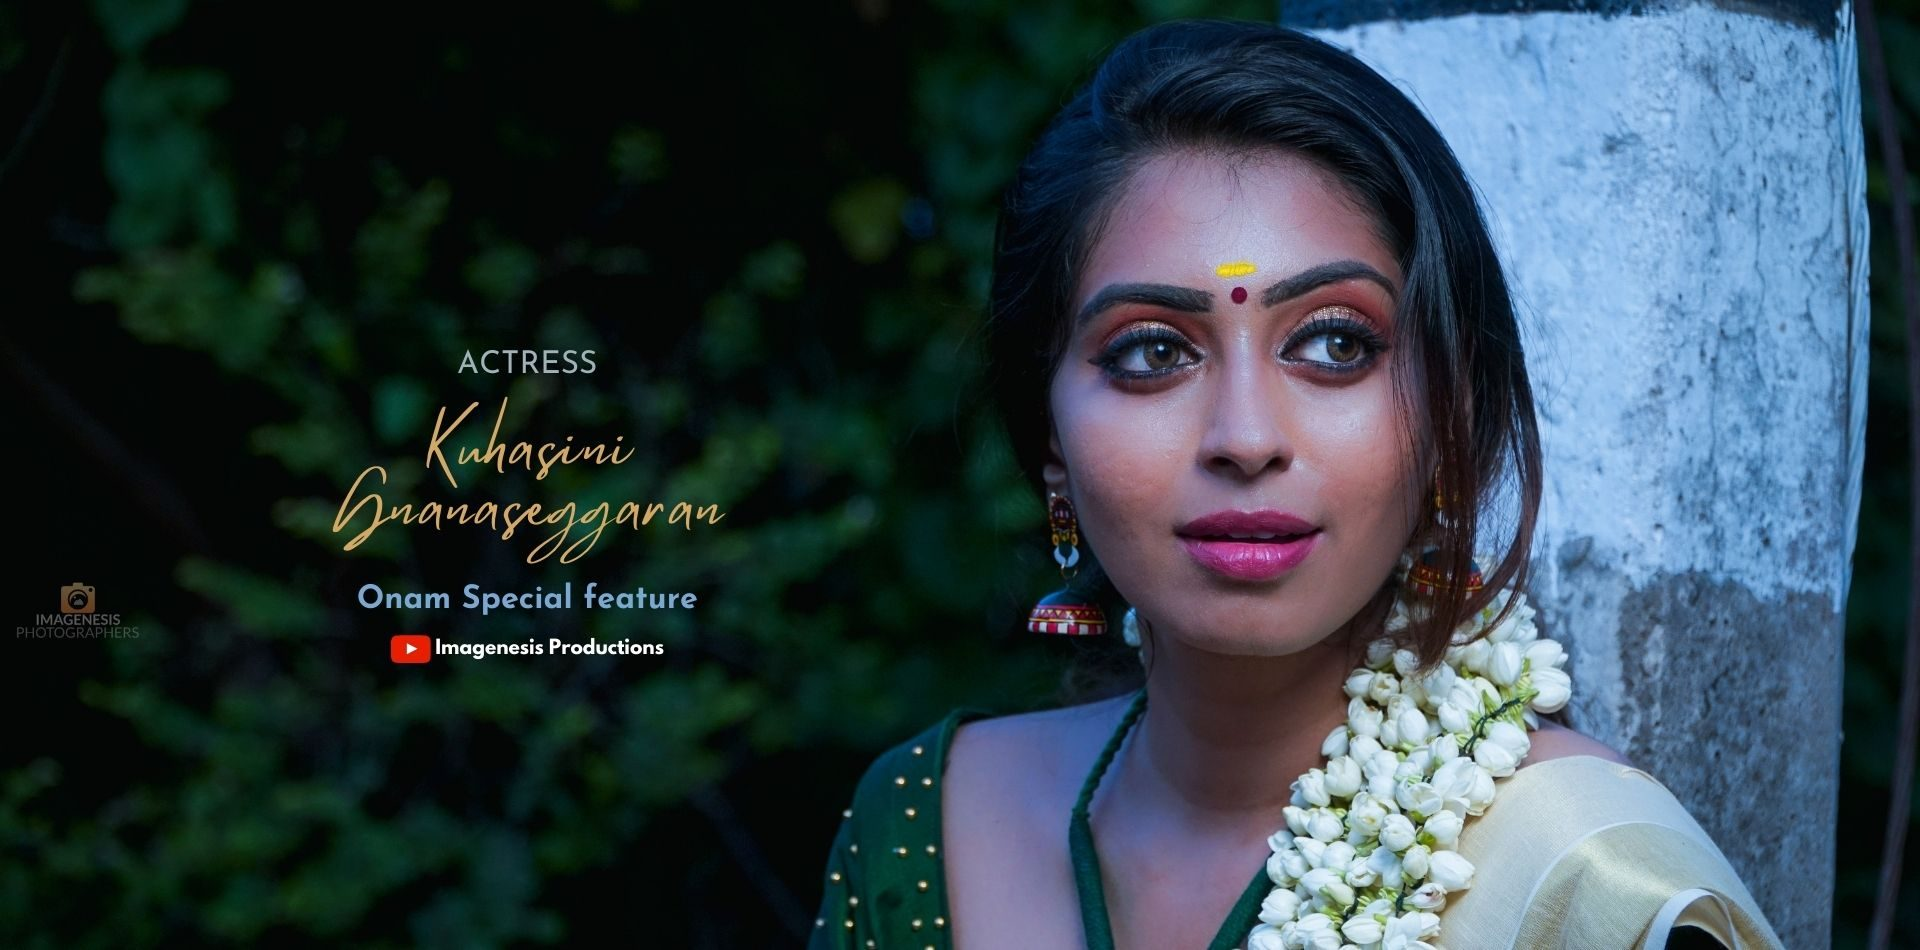 Actress Kuhasini Gnanseggaran Onam Debut